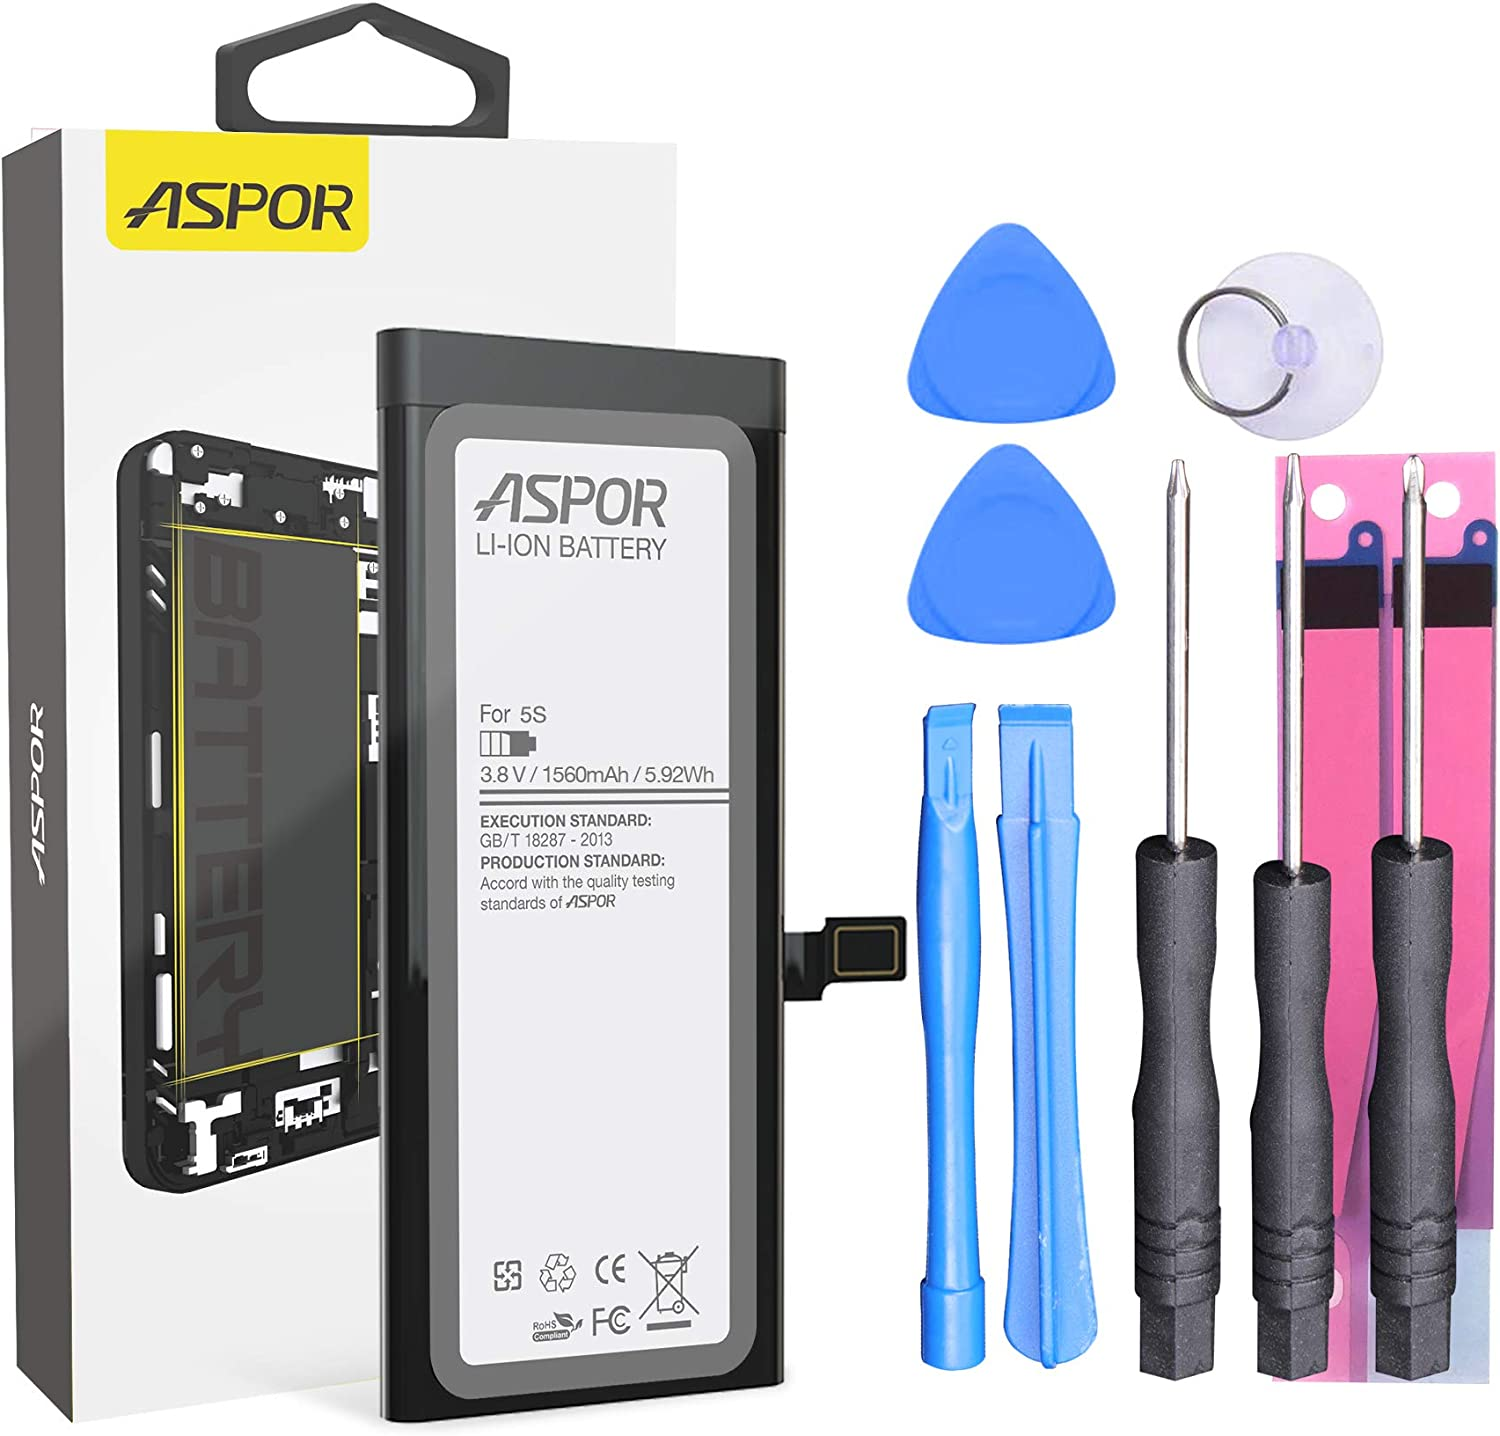 ASPOR Battery Replacement Compatible with iPhone 5S or 5C, 1560 mAh Battery for iPhone 5S/5C with Complete Repair Tool Kits & Adhesive Strips